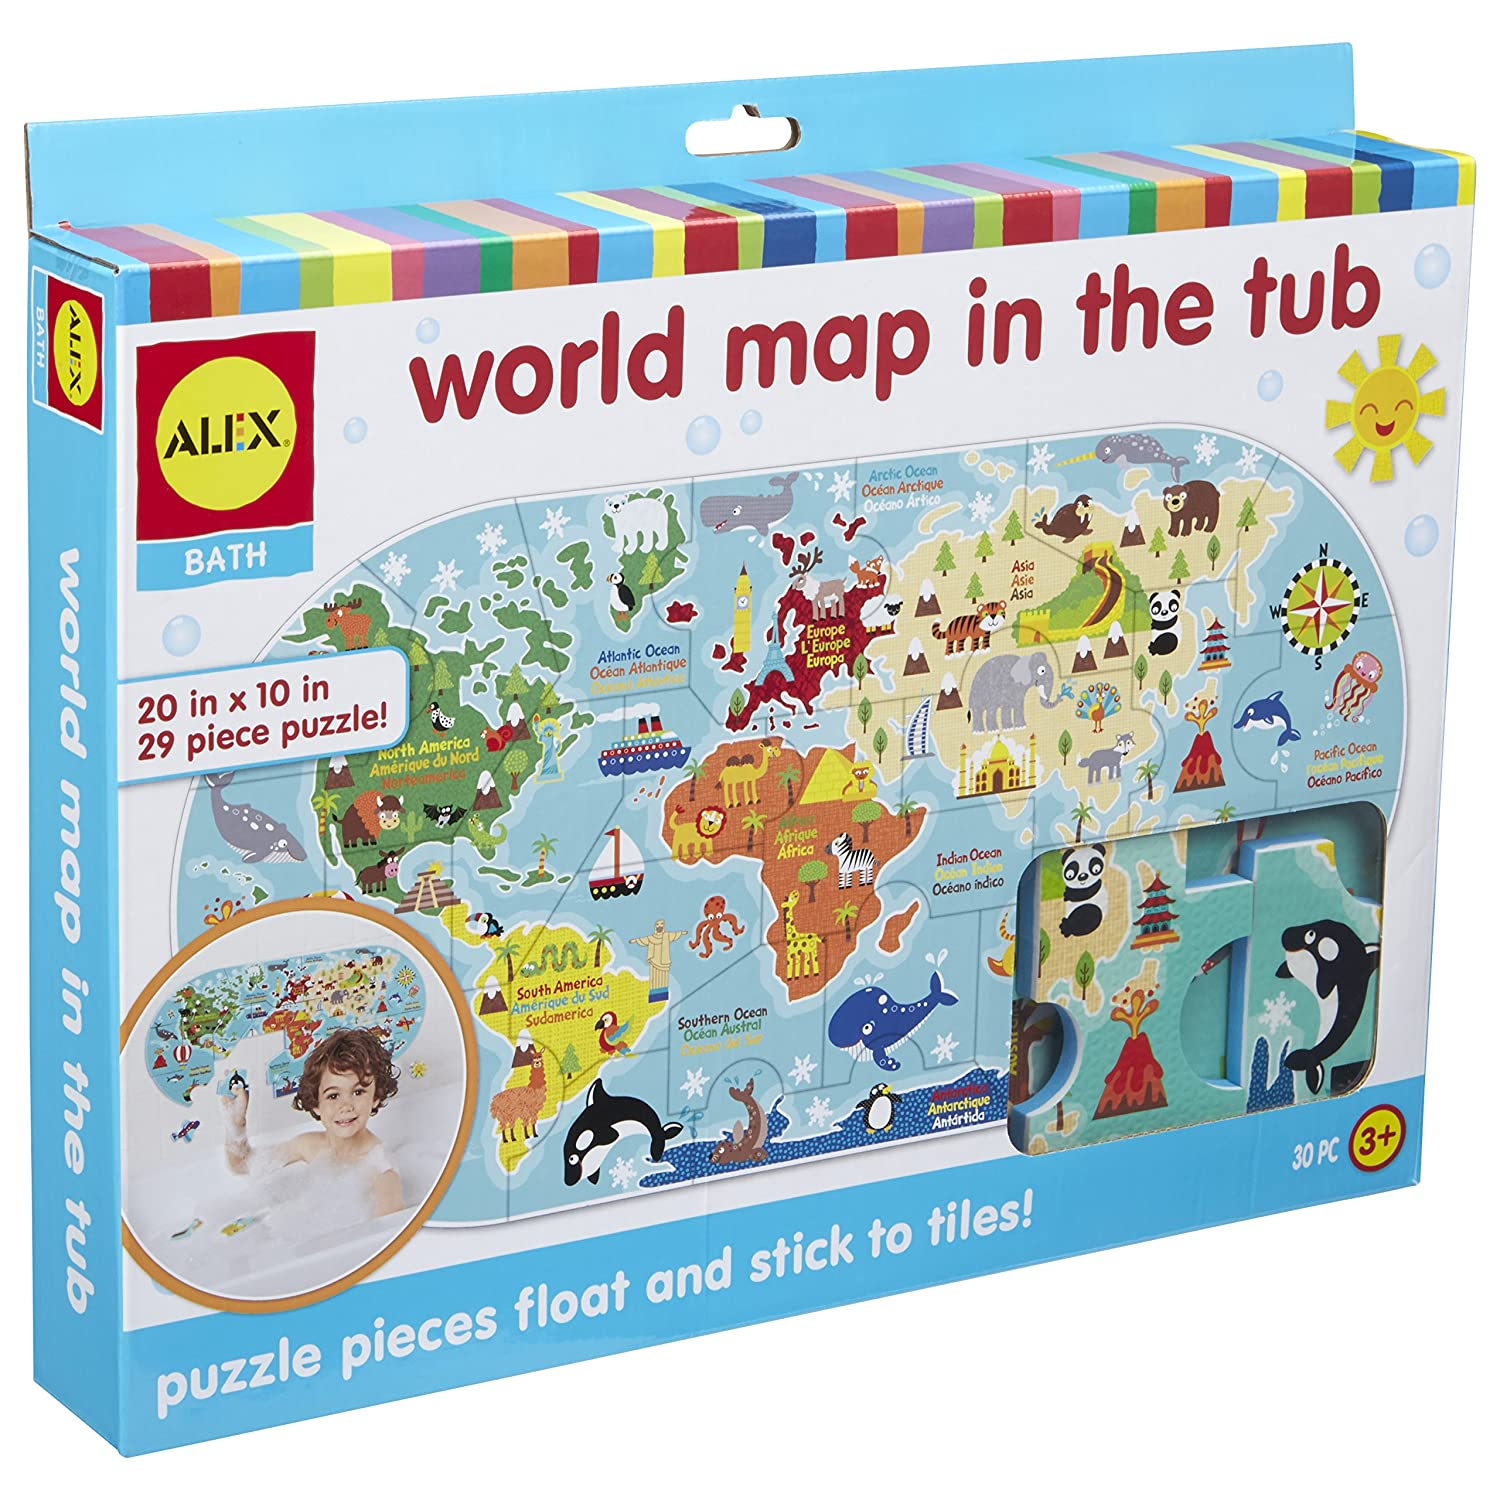 Top 10 Best World Map for Kids Reviews in 2020 7